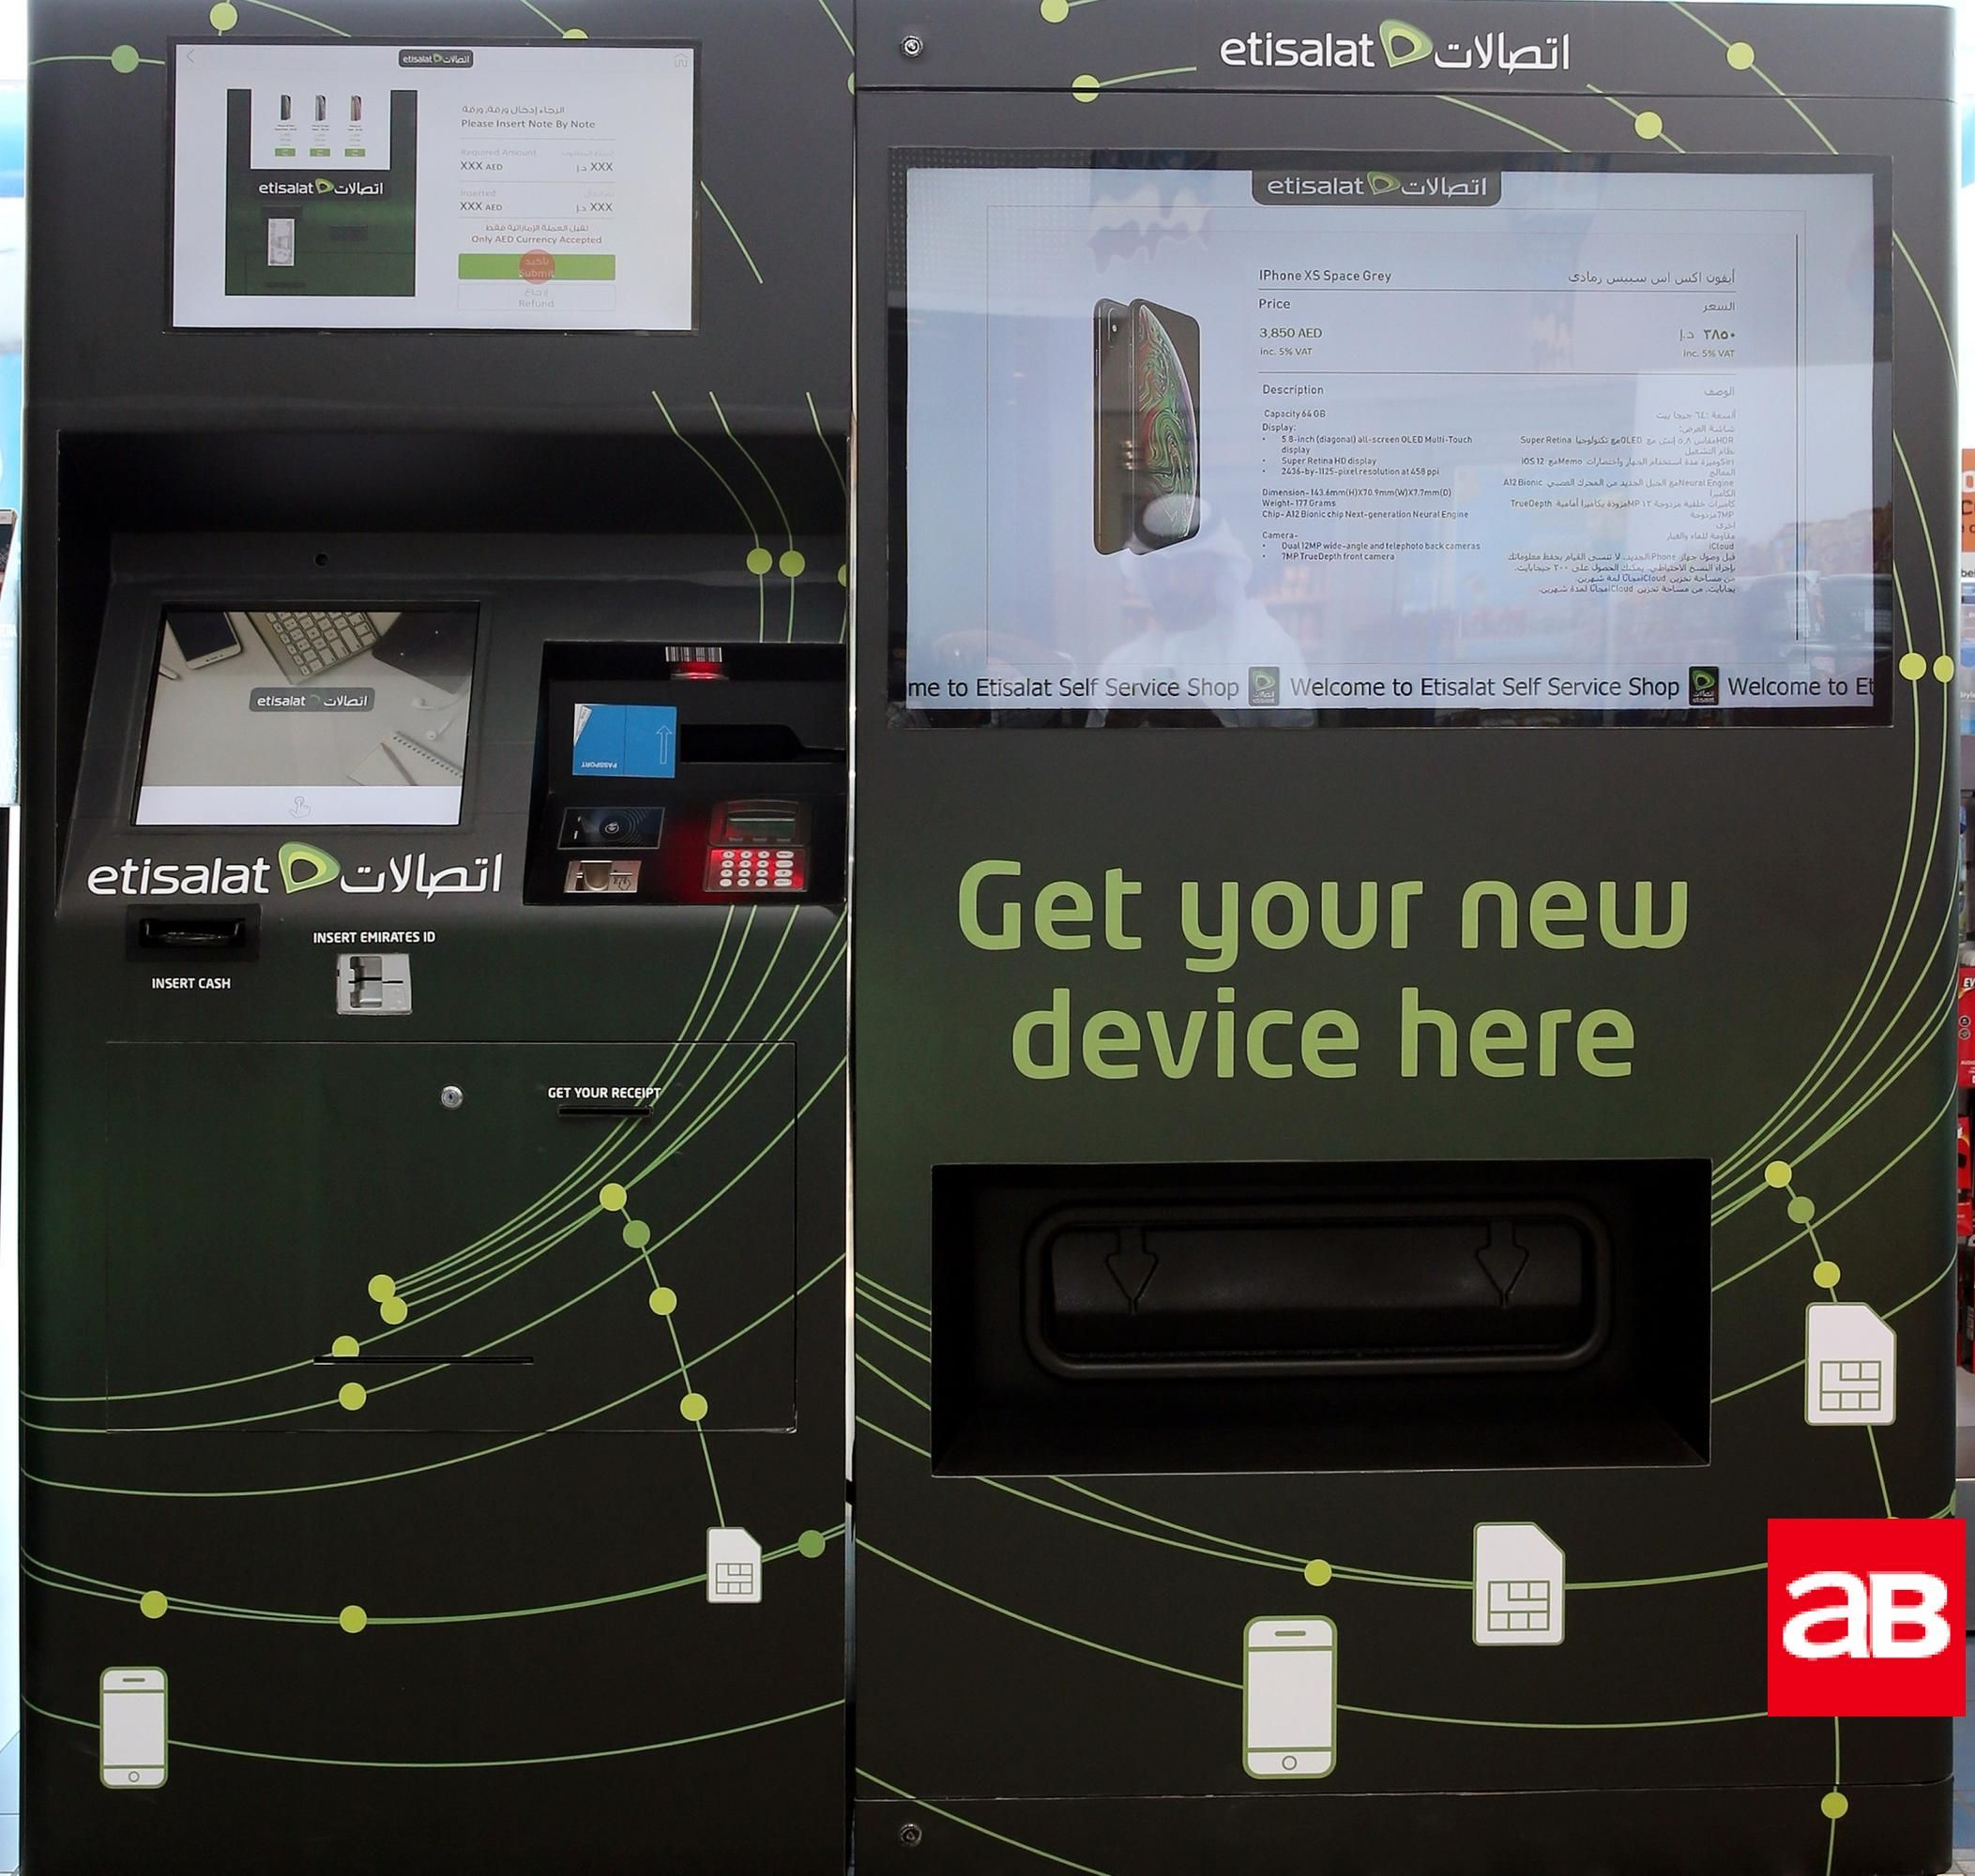 Etisalat Has Launched a Smartphone Self-Service Vending Machine